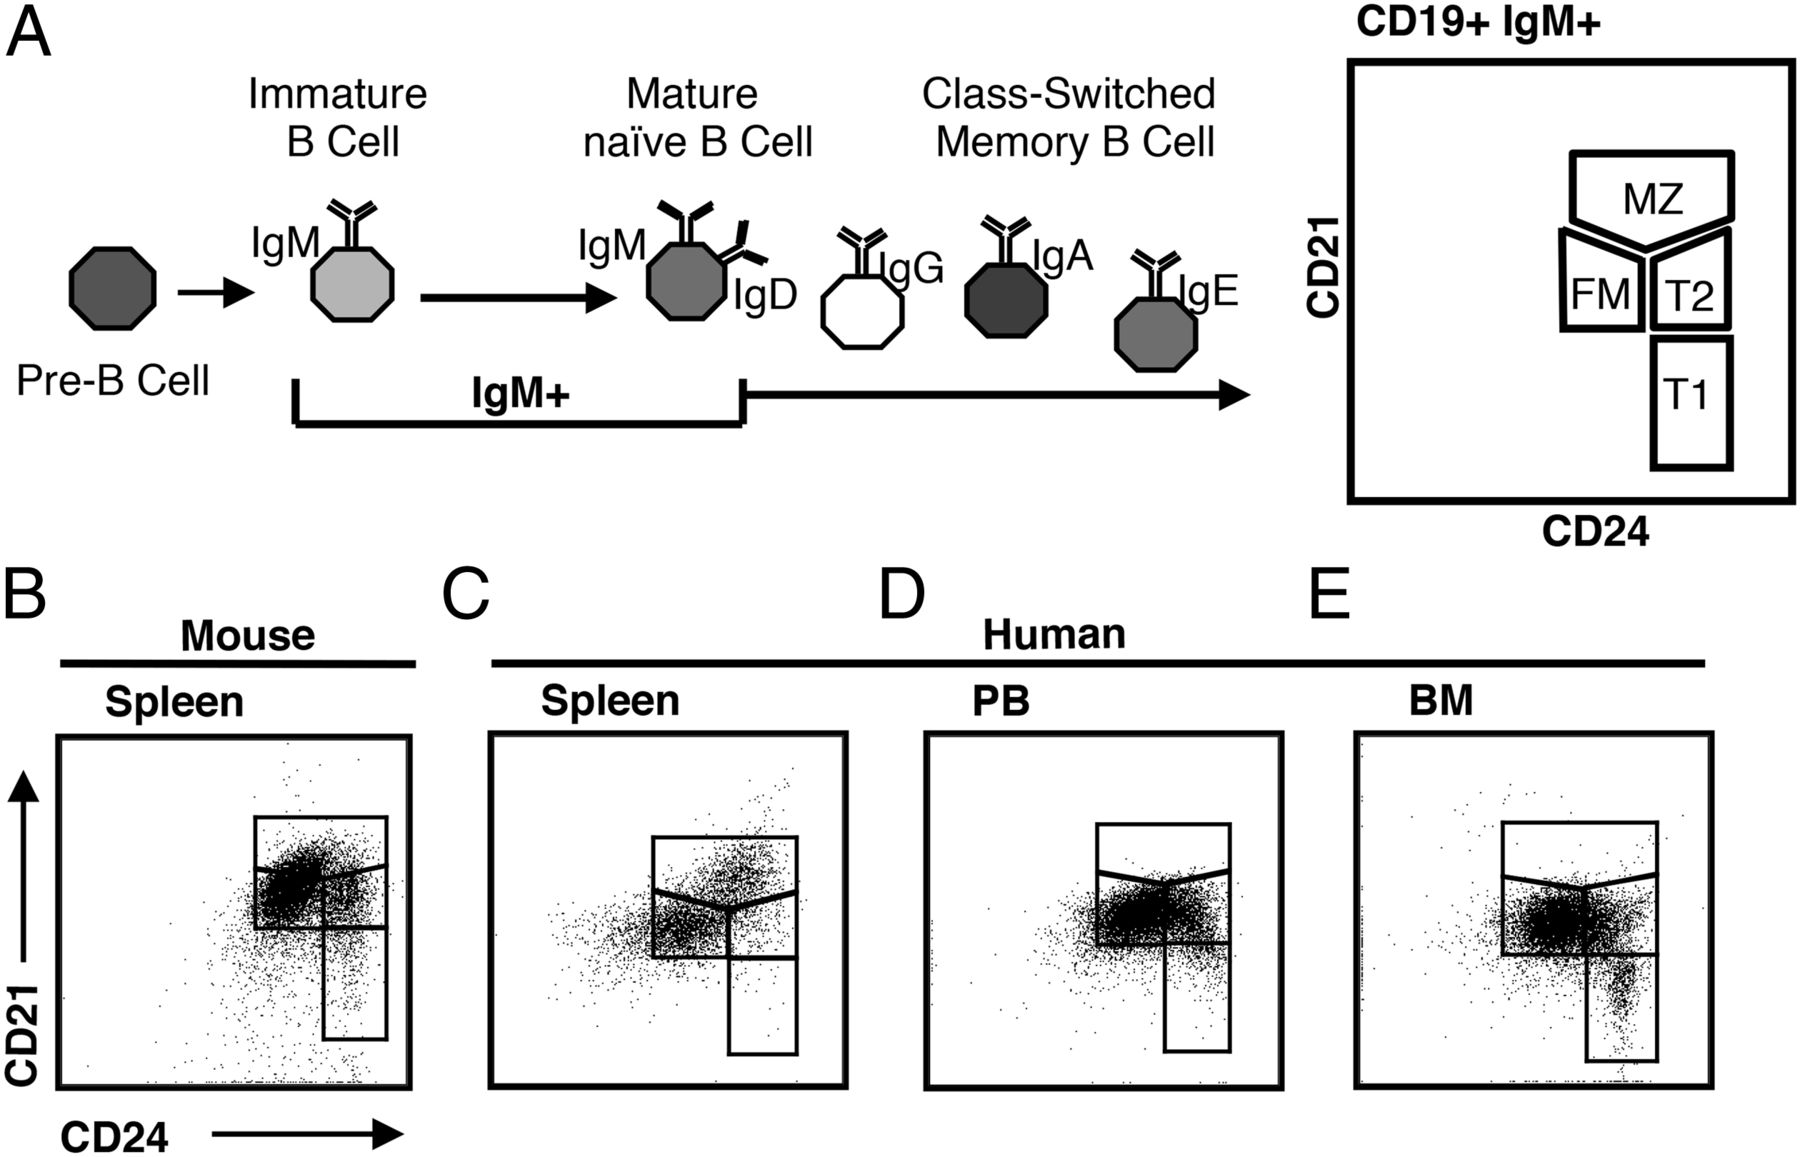 Differences In Mouse And Human Nonmemory B Cell Pools